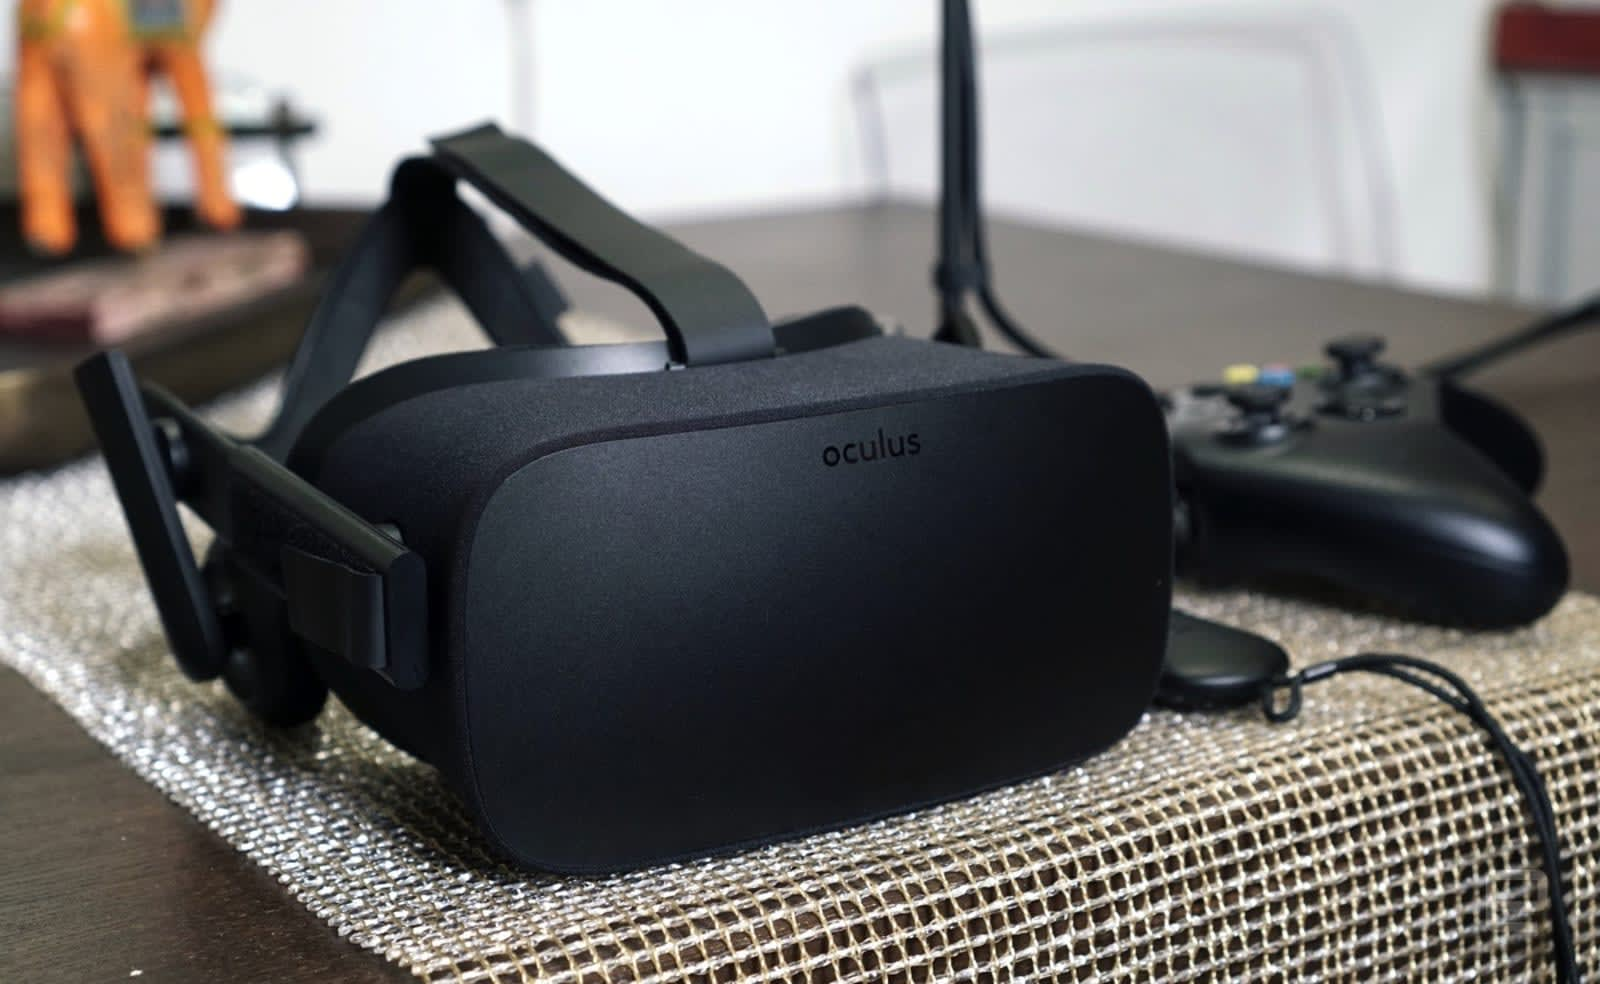 ff6a94a8b562 Oculus Rift requires Windows 10 for new features